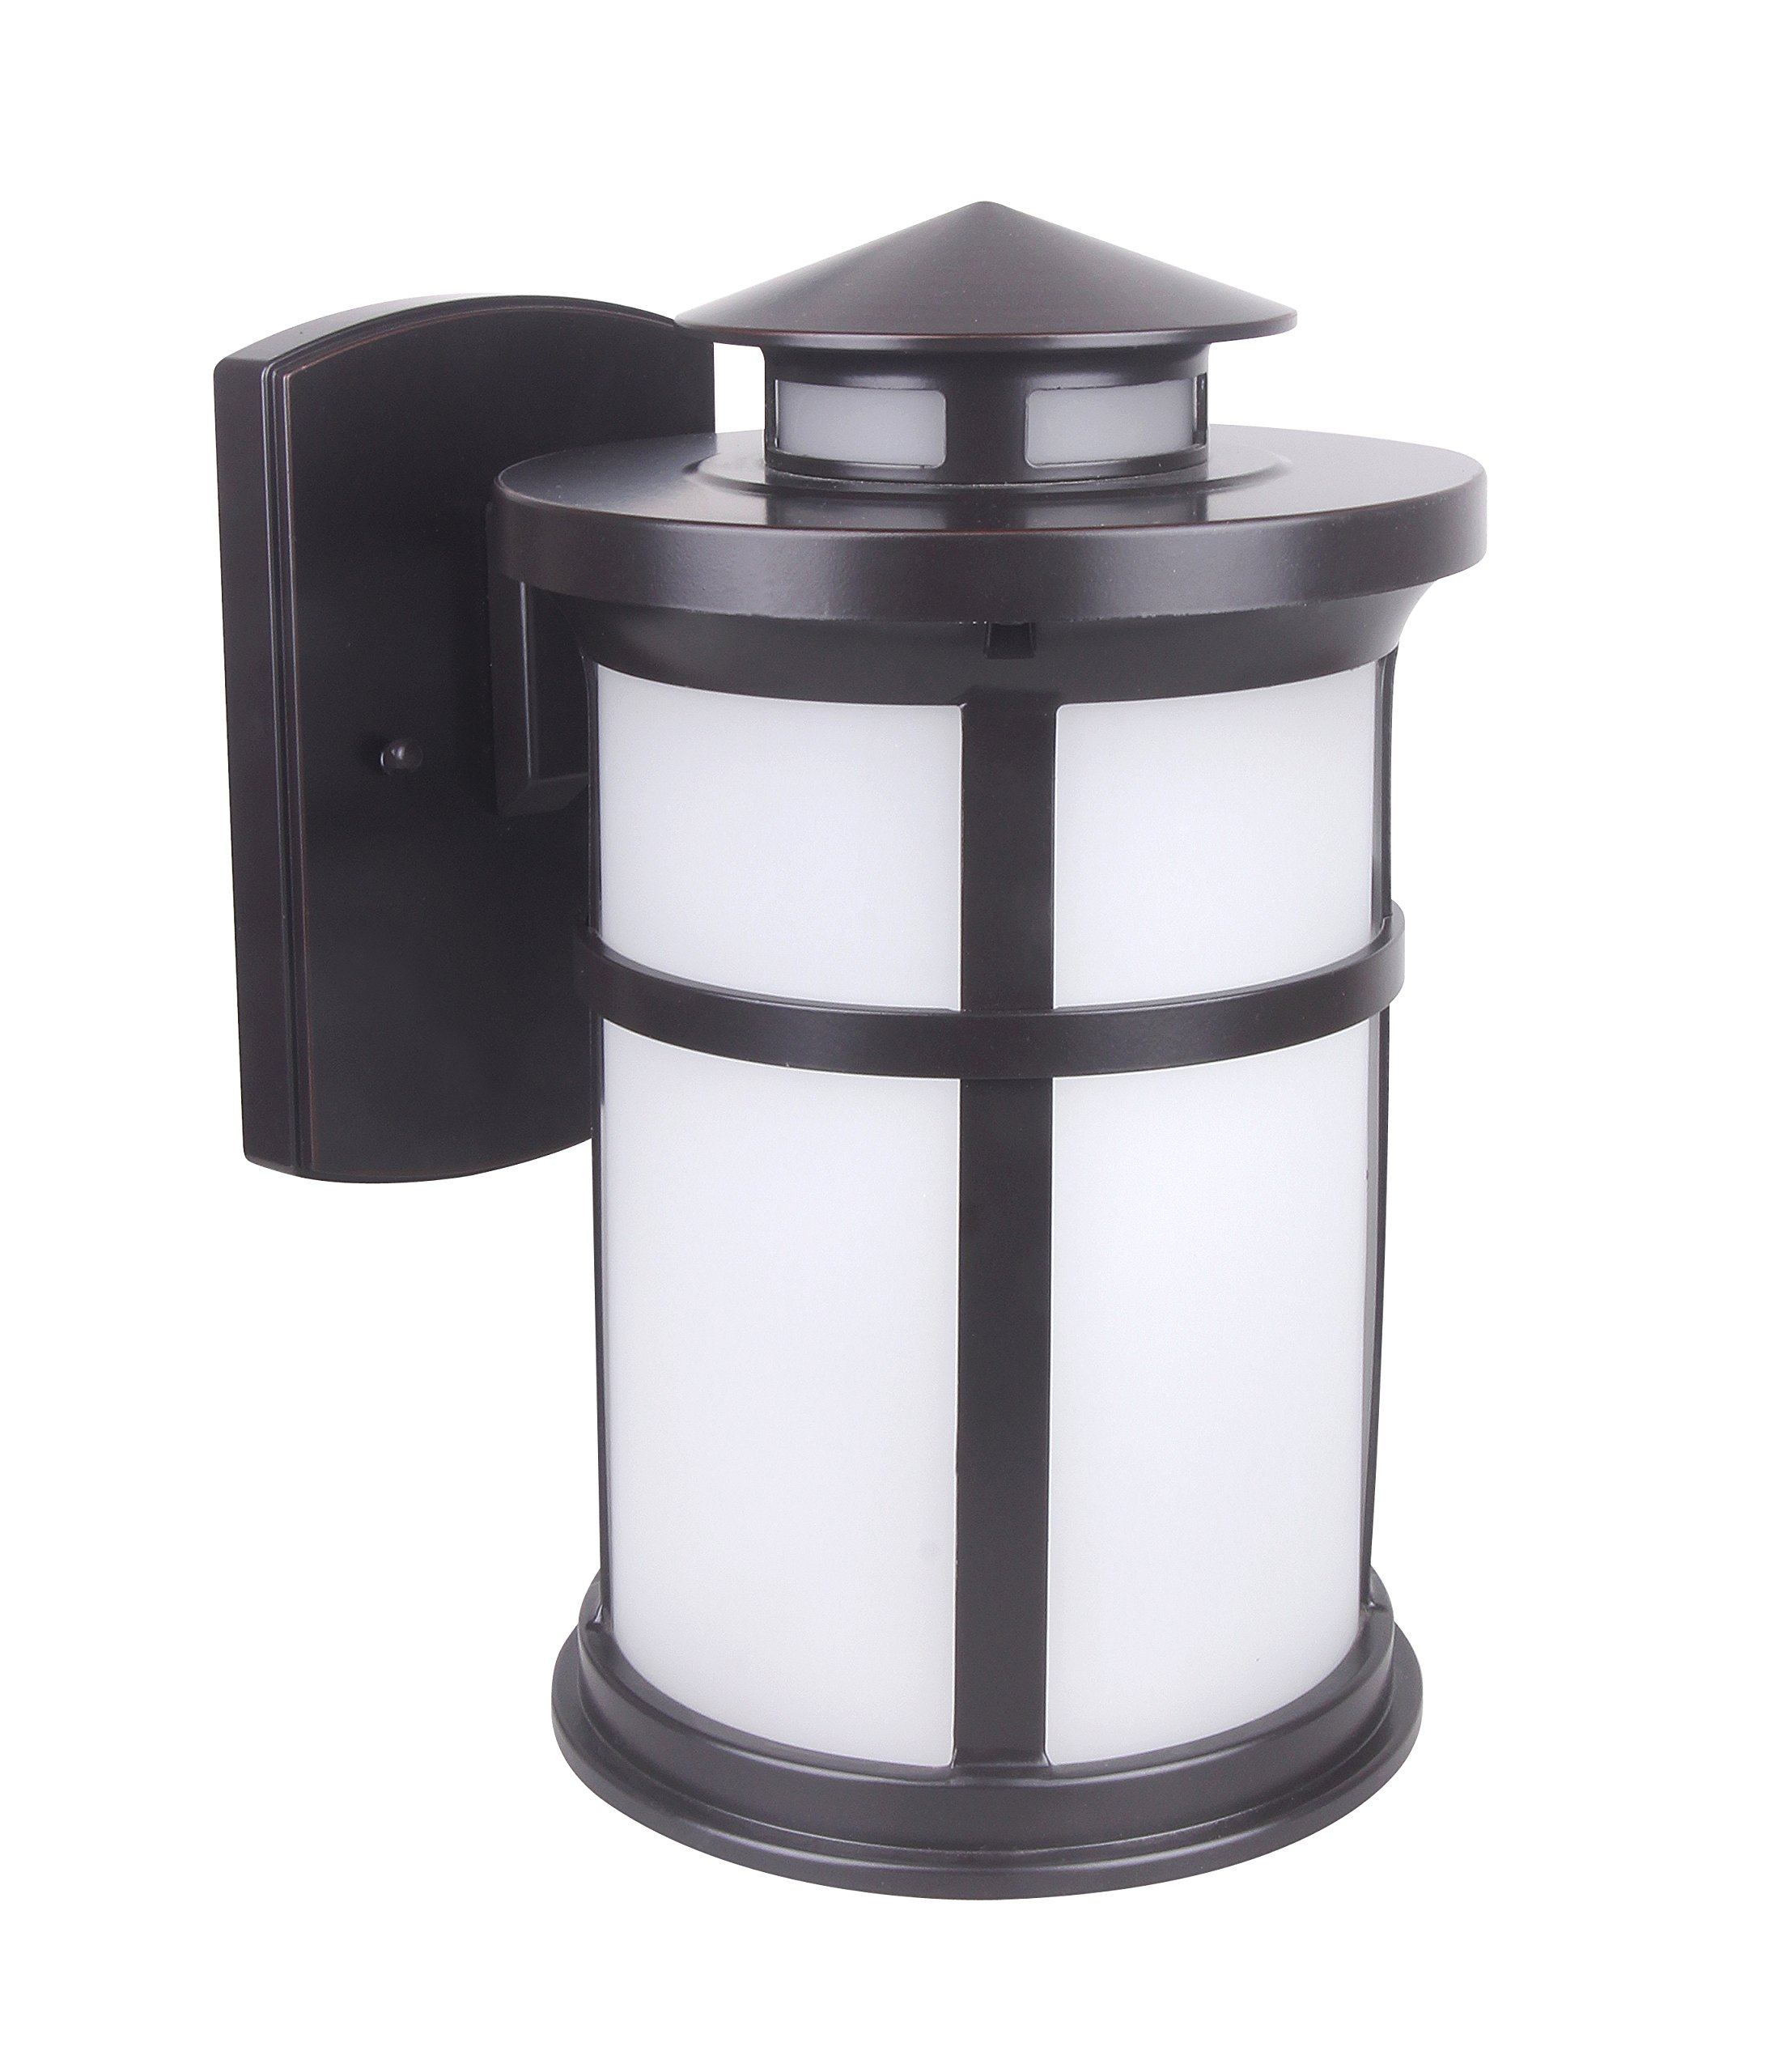 Lit-Path Outdoor LED Wall Lantern, Wall Sconce as Porch Light Fixture, 11.5W (100W Equivalent), 1050 Lumen, Aluminum Housing Plus Glass, Oil Rubbed Bronze, ETL and ES Qualified